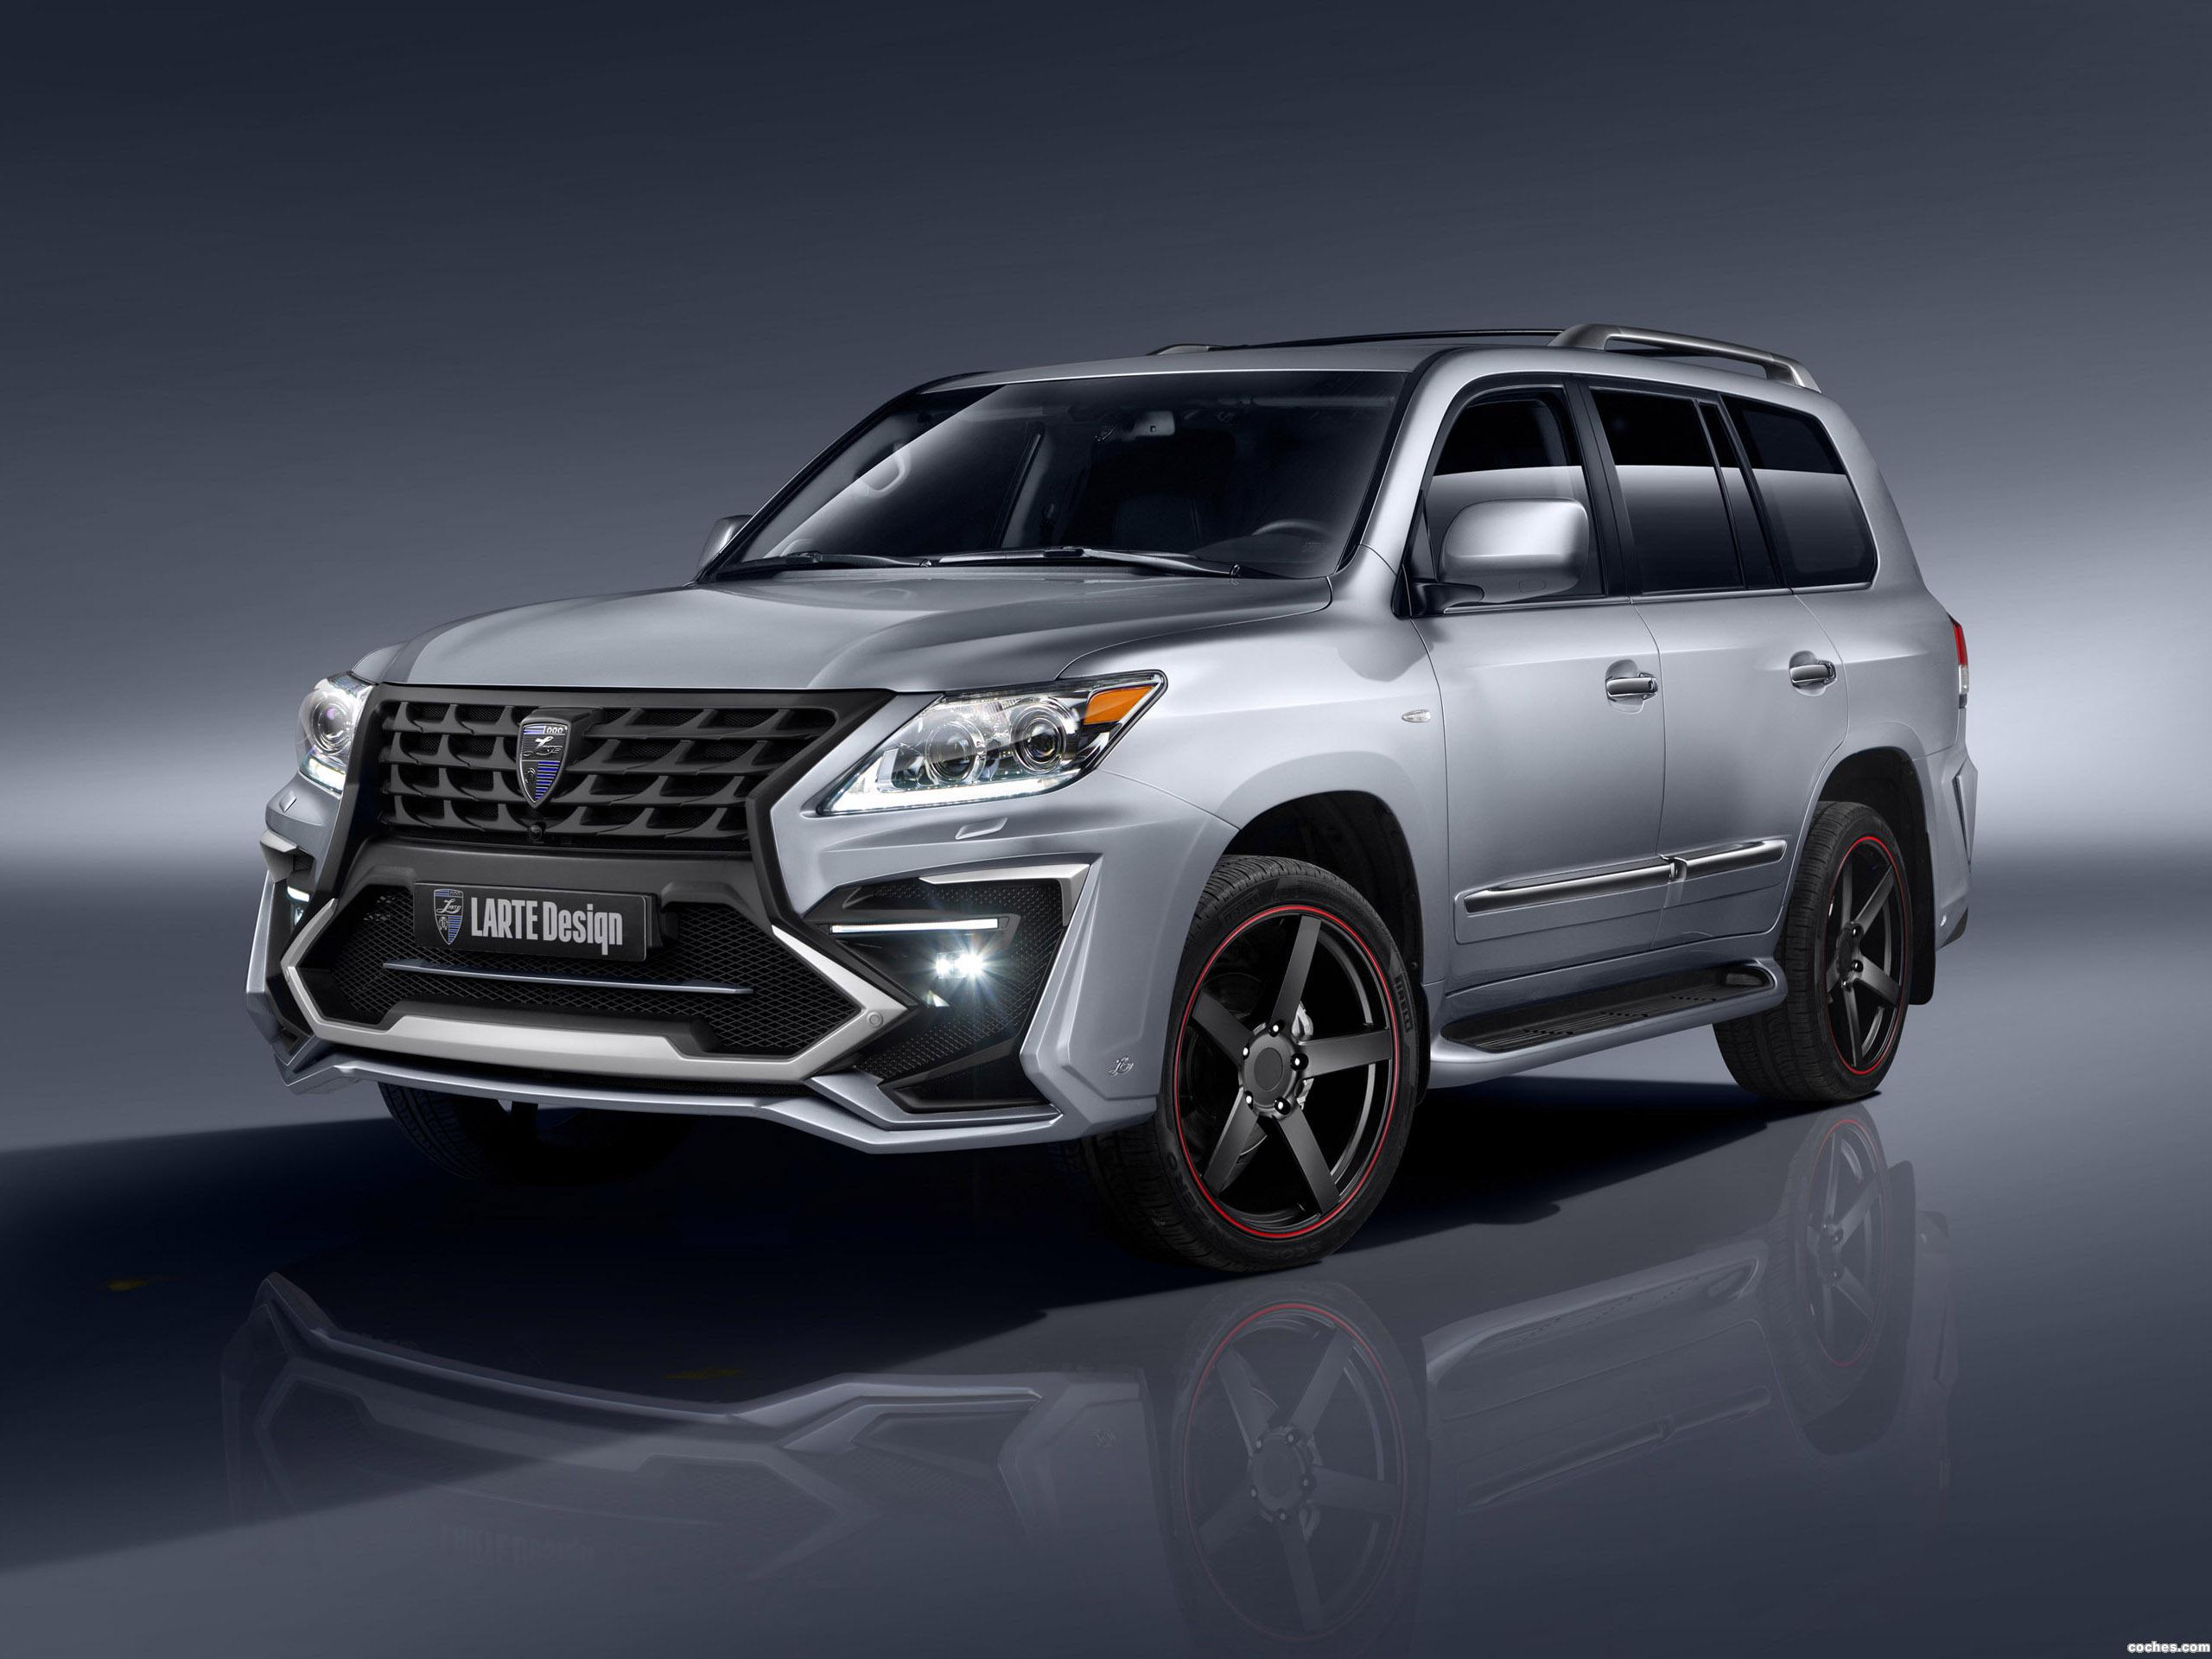 Foto 0 de Lexus LX 570 Alligator Larte Design 2014